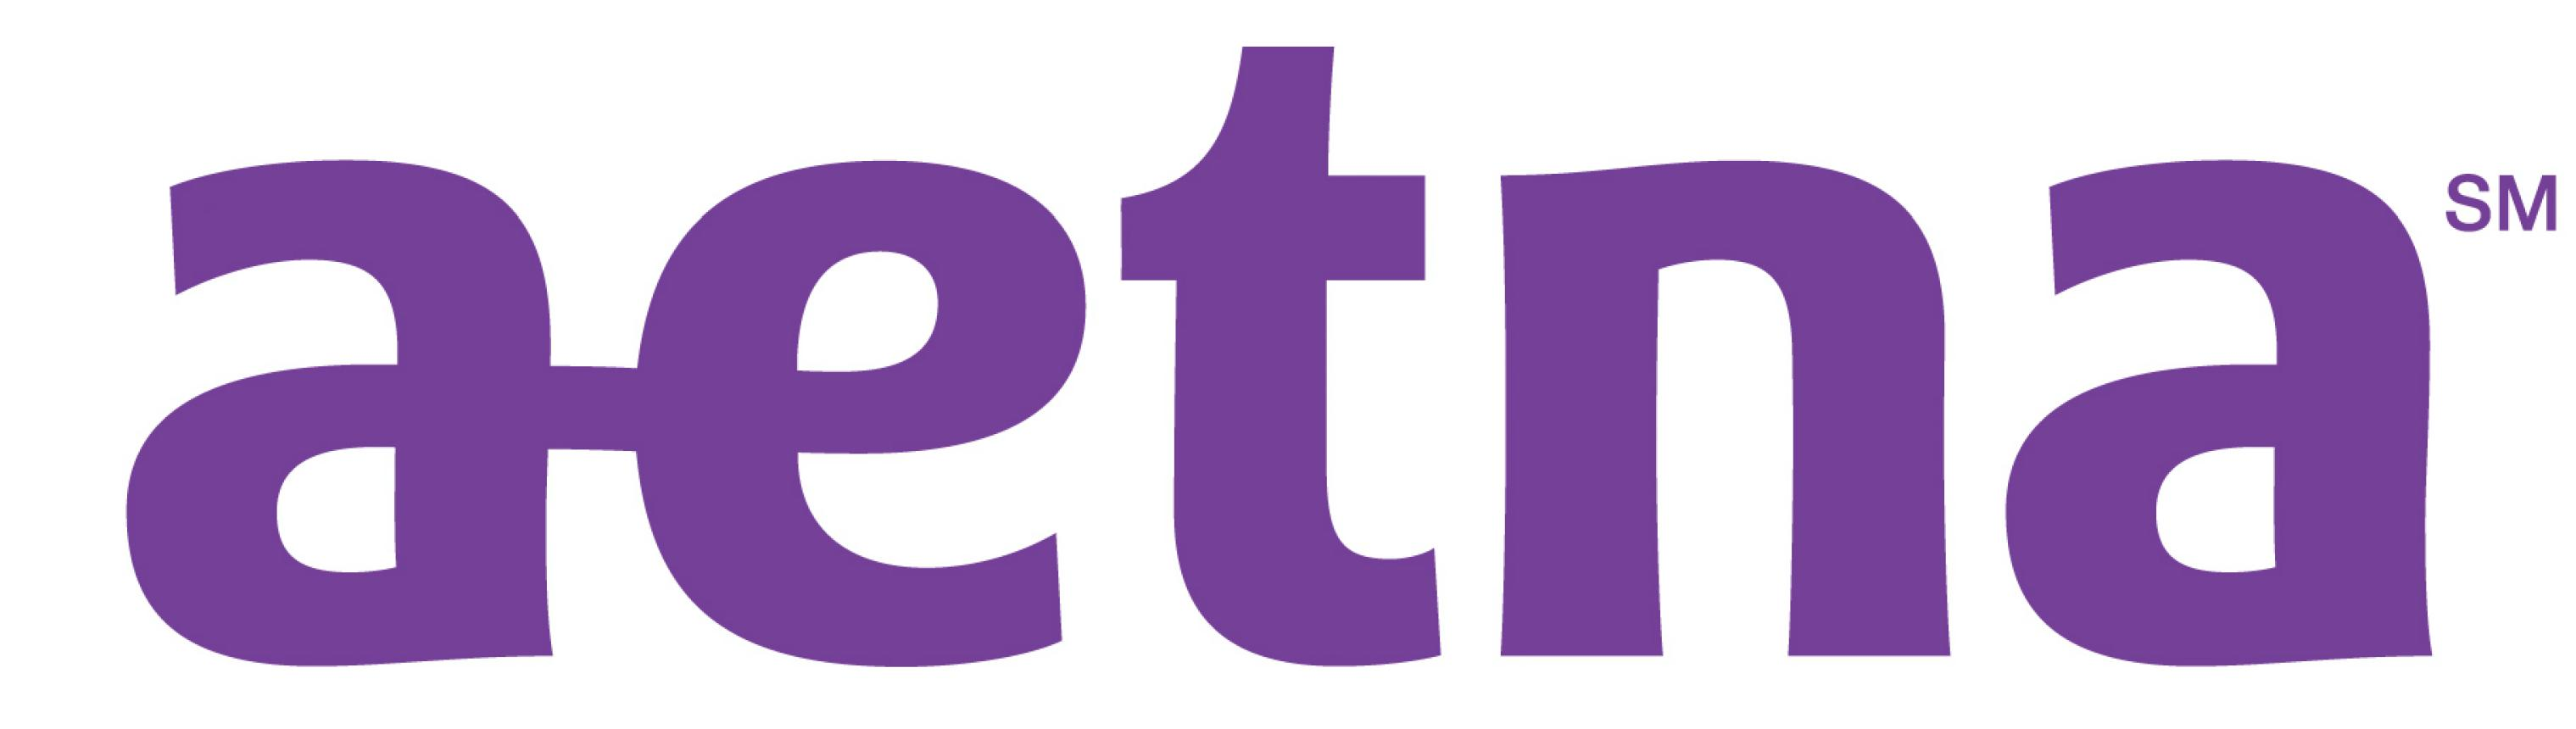 Aetna Logo Wallpaper